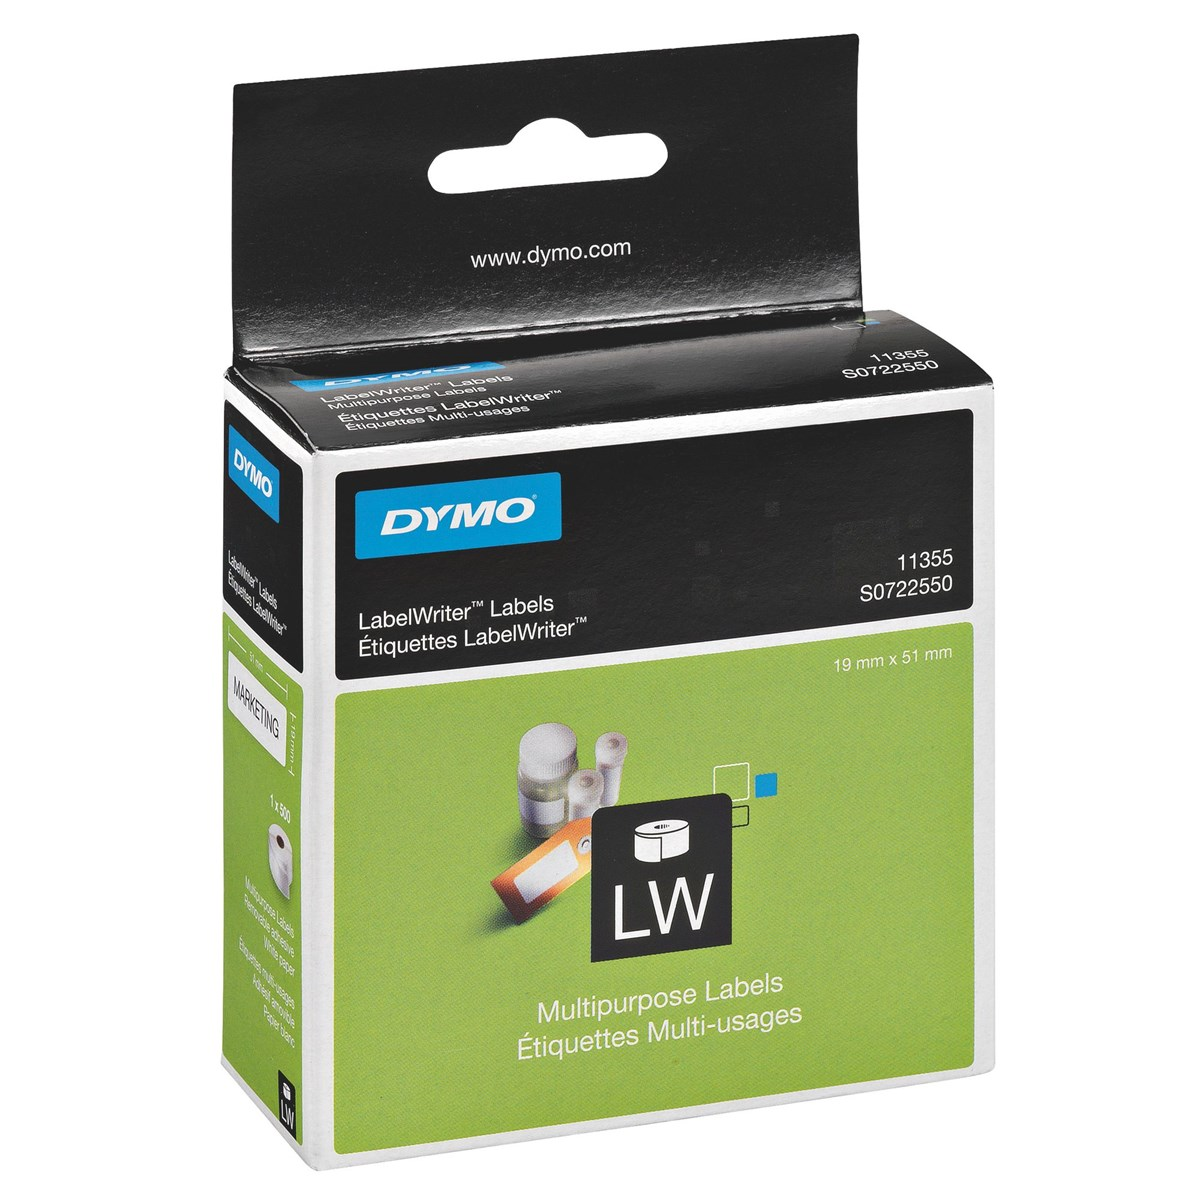 Original Dymo 11355 White 19mm x 51mm Multipurpose Label Tape - 500 Labels (S0722550)